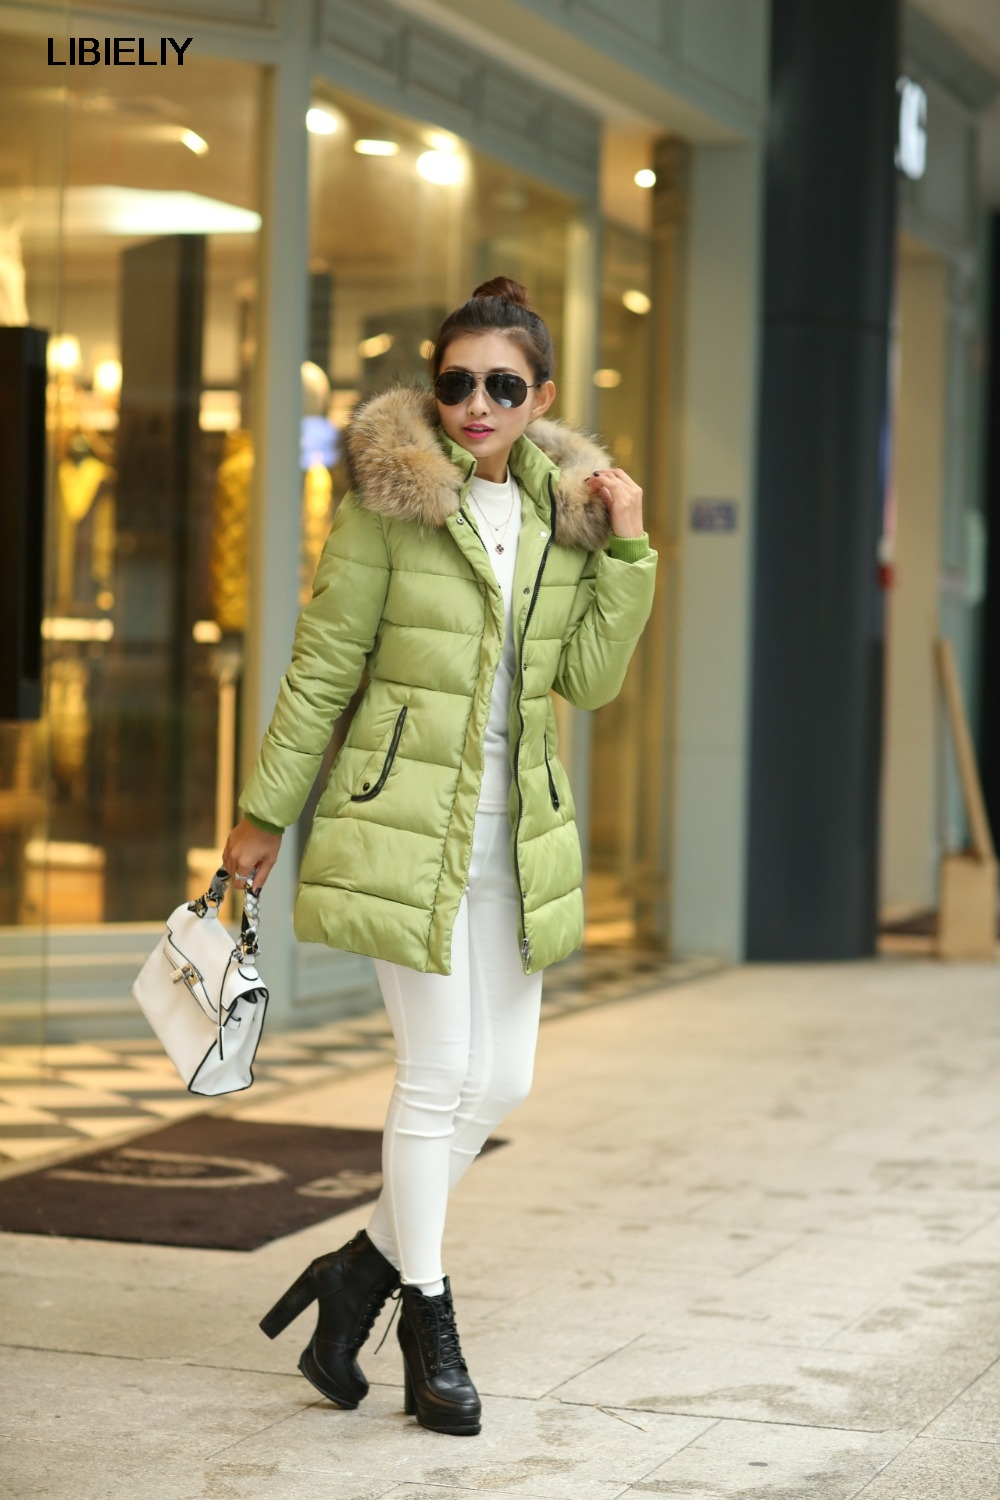 Nice Fashion Coat Women Winter Jacket Parkas Casual Outwear Military Hooded Fur Coats Manteau Femme Woman Clothes 4 Color WD1188 indjxnd winter woman jacket women parkas casual clothing thick outwear hooded coat imitation femme fox fur coats manteau loose